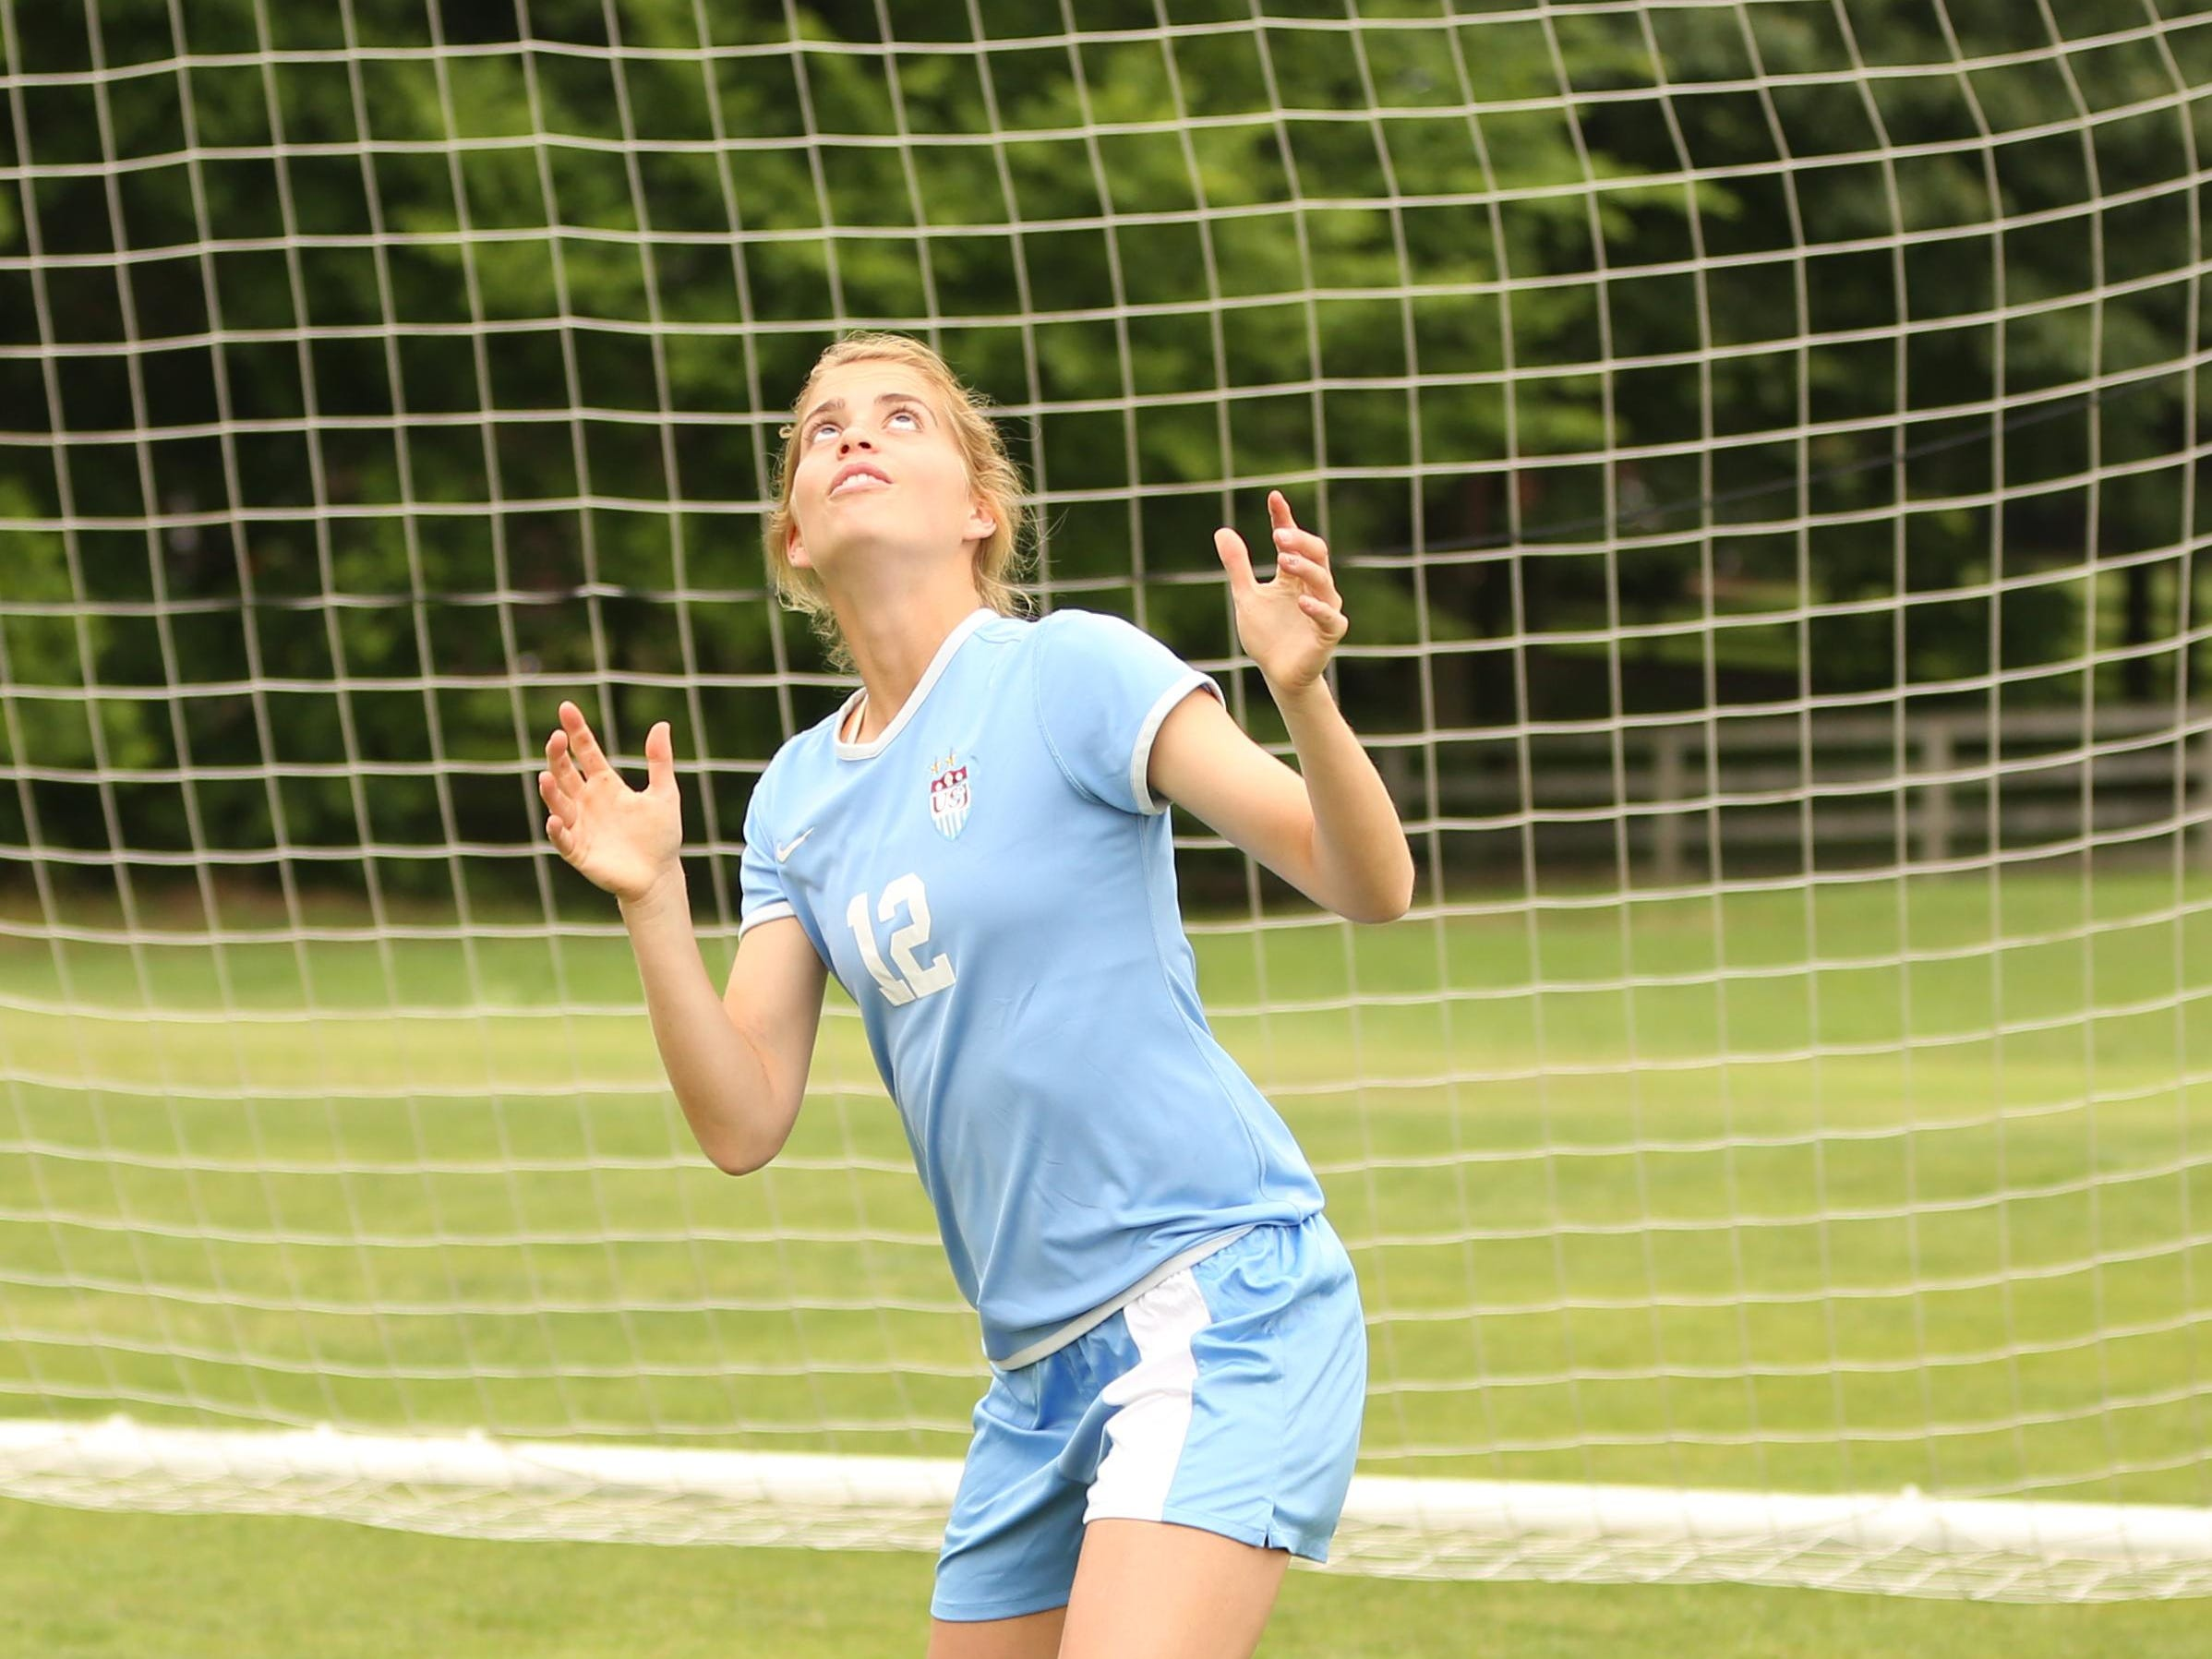 After missing most of last season, USJ's Abbey Fleming is hoping to get back to scoring.